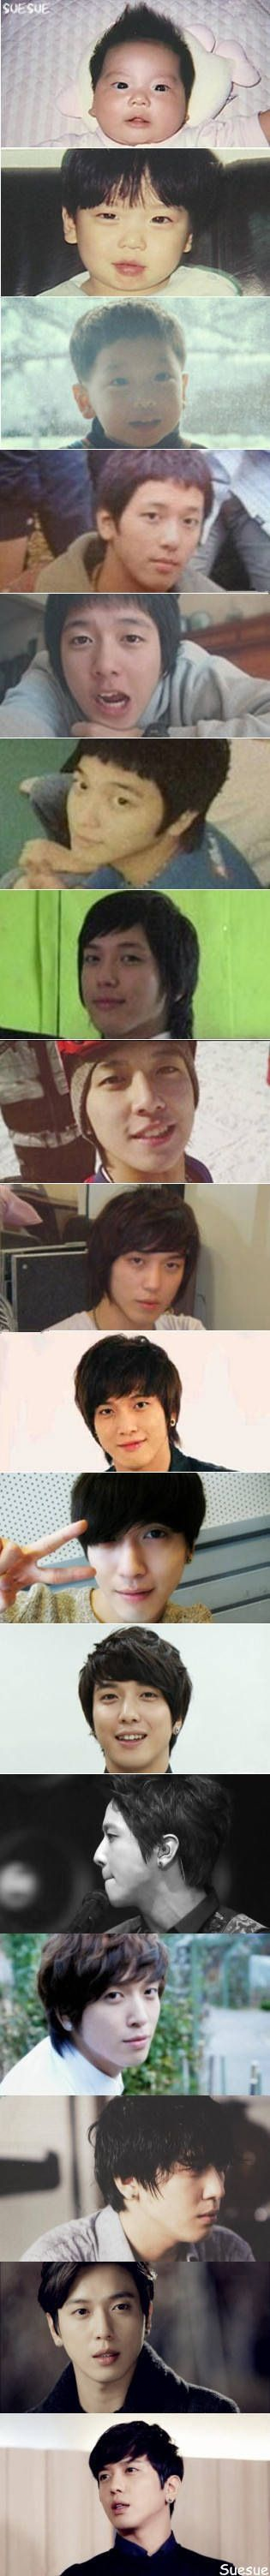 Jung Yong Hwa from baby to present, such a cutie!